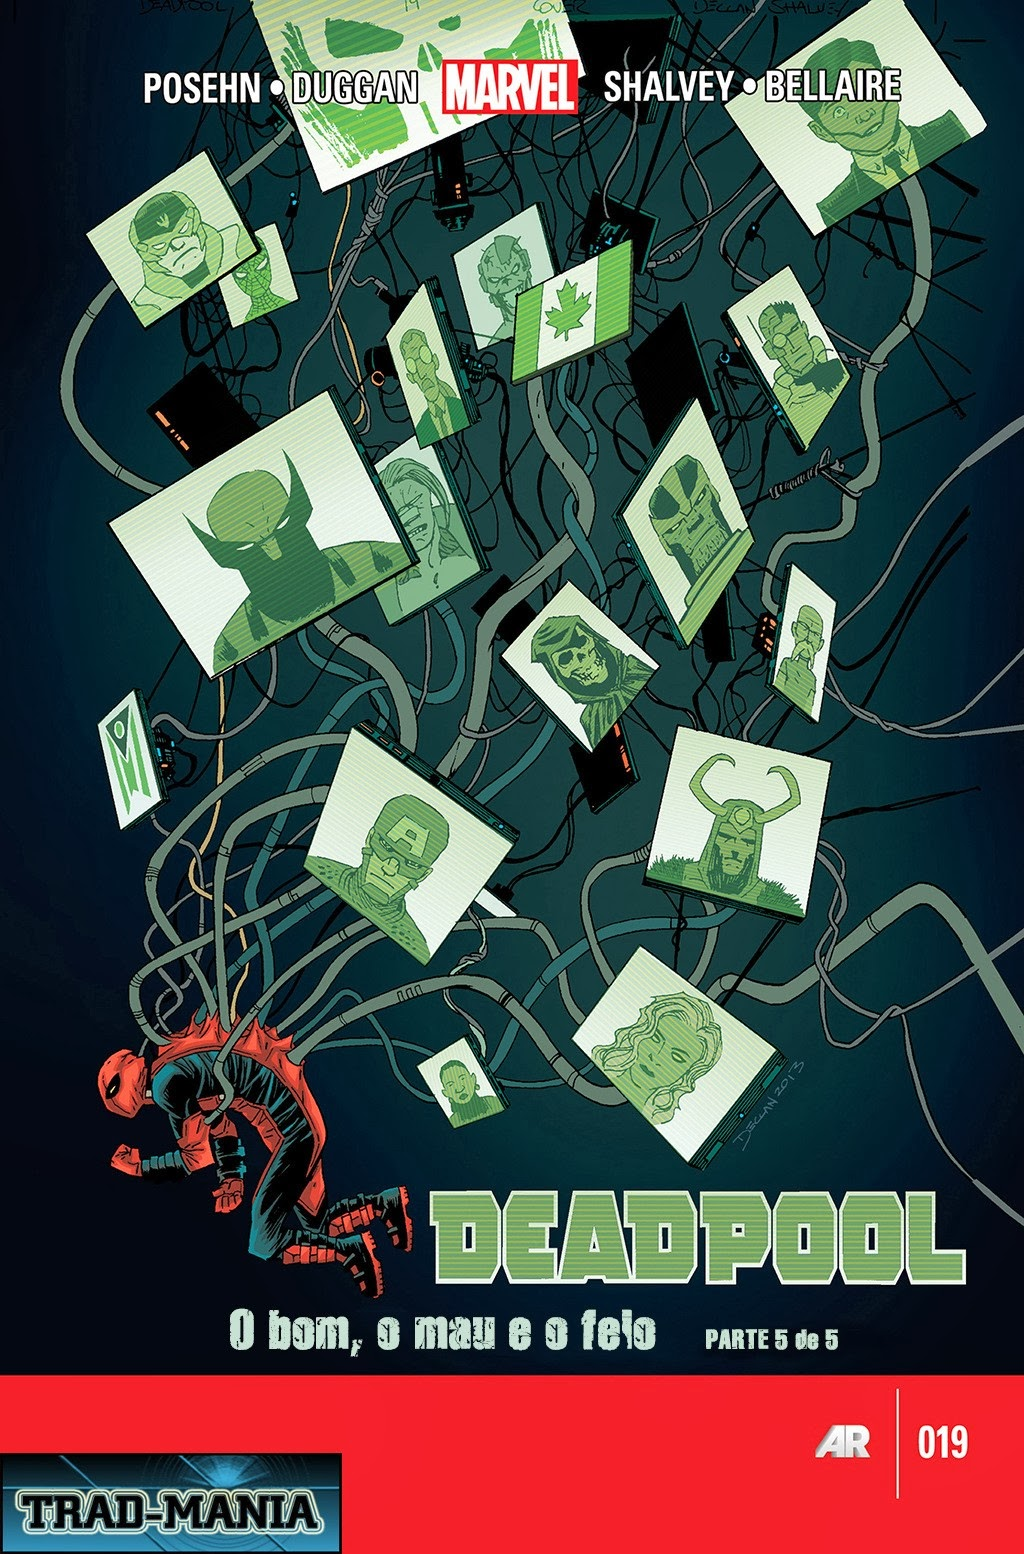 Nova Marvel! Deadpool v5 #19